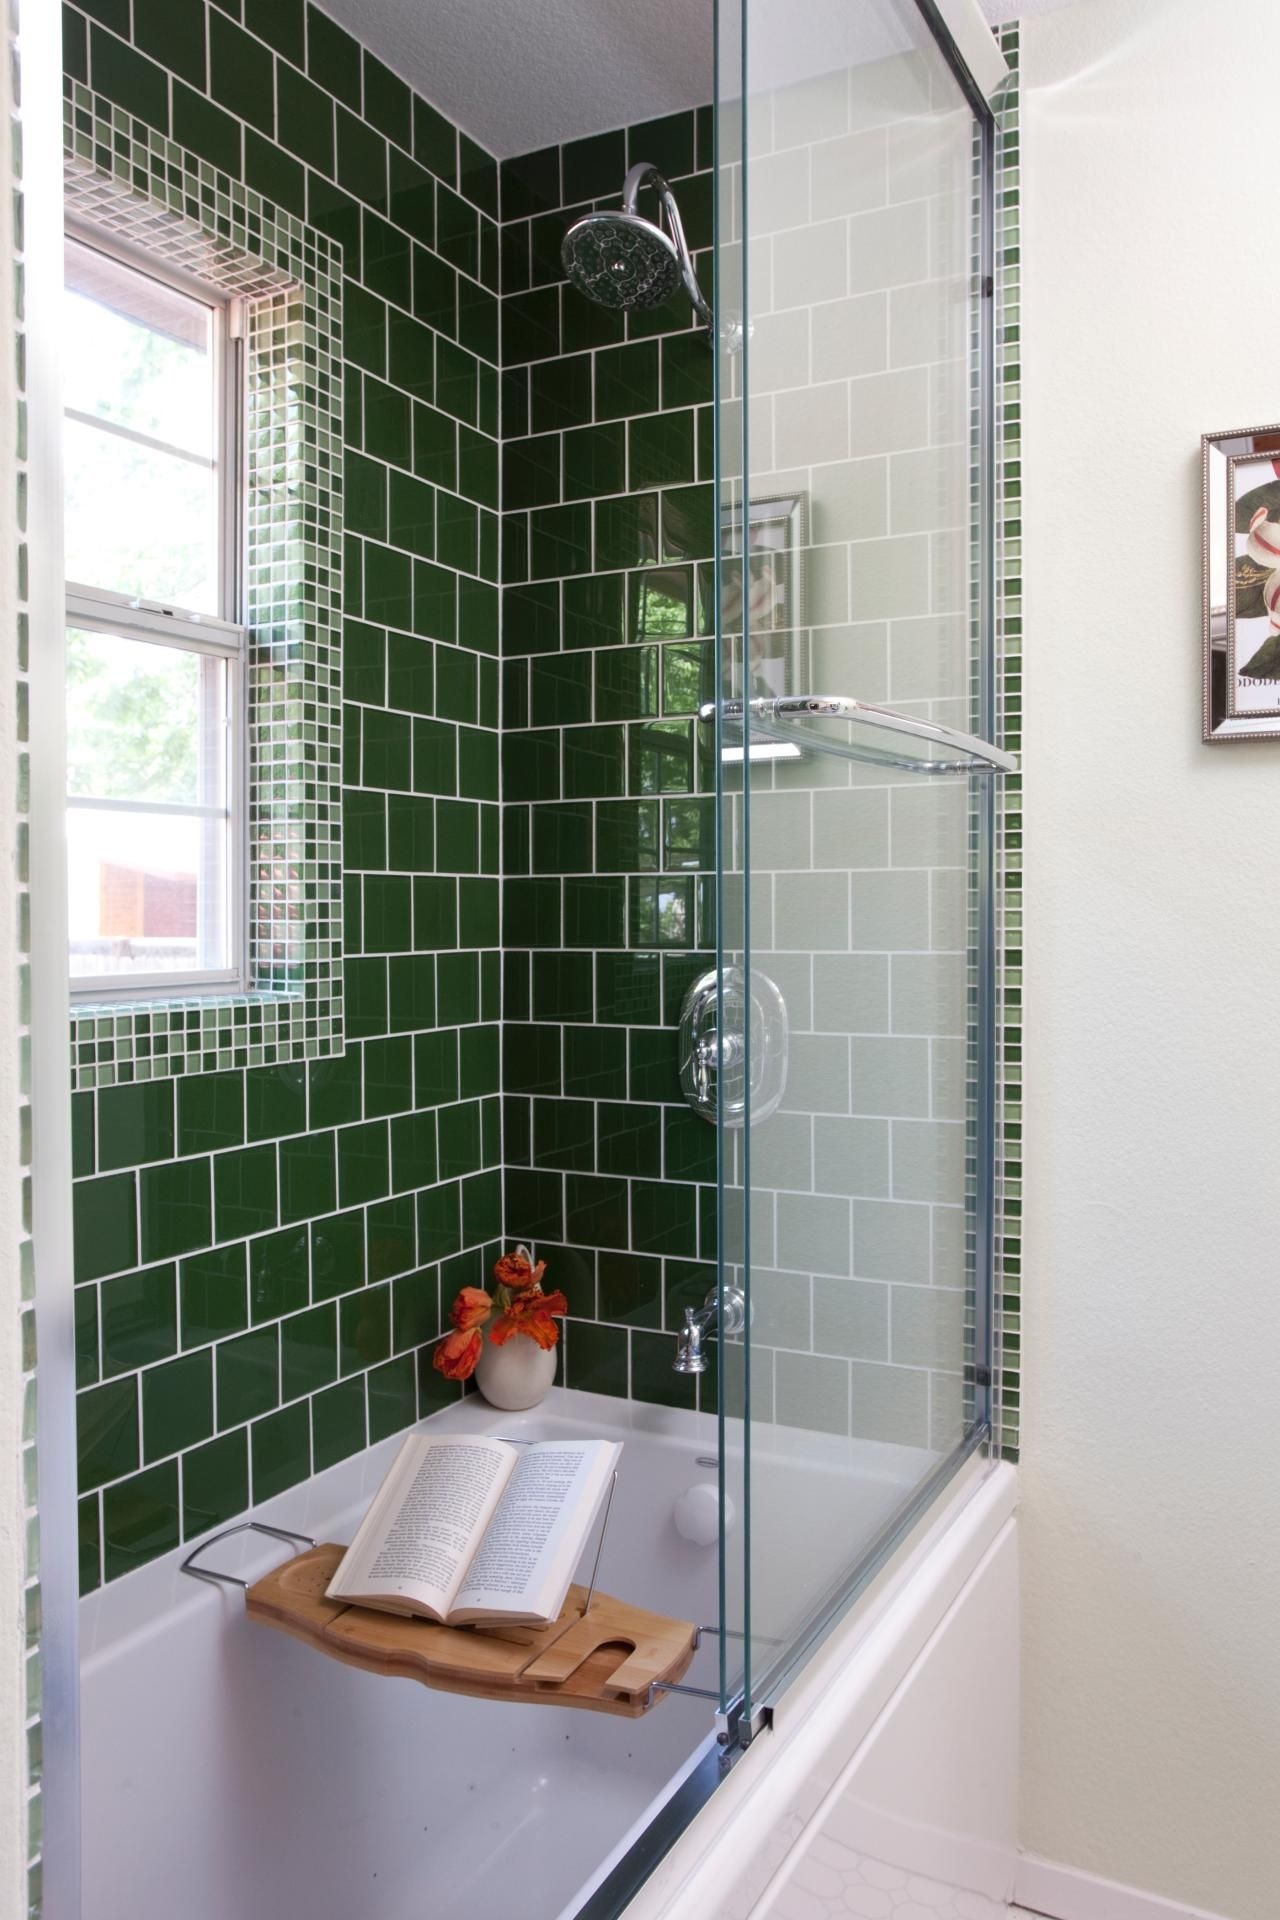 A Tub Is Surrounded By Green Tile, Laid In A